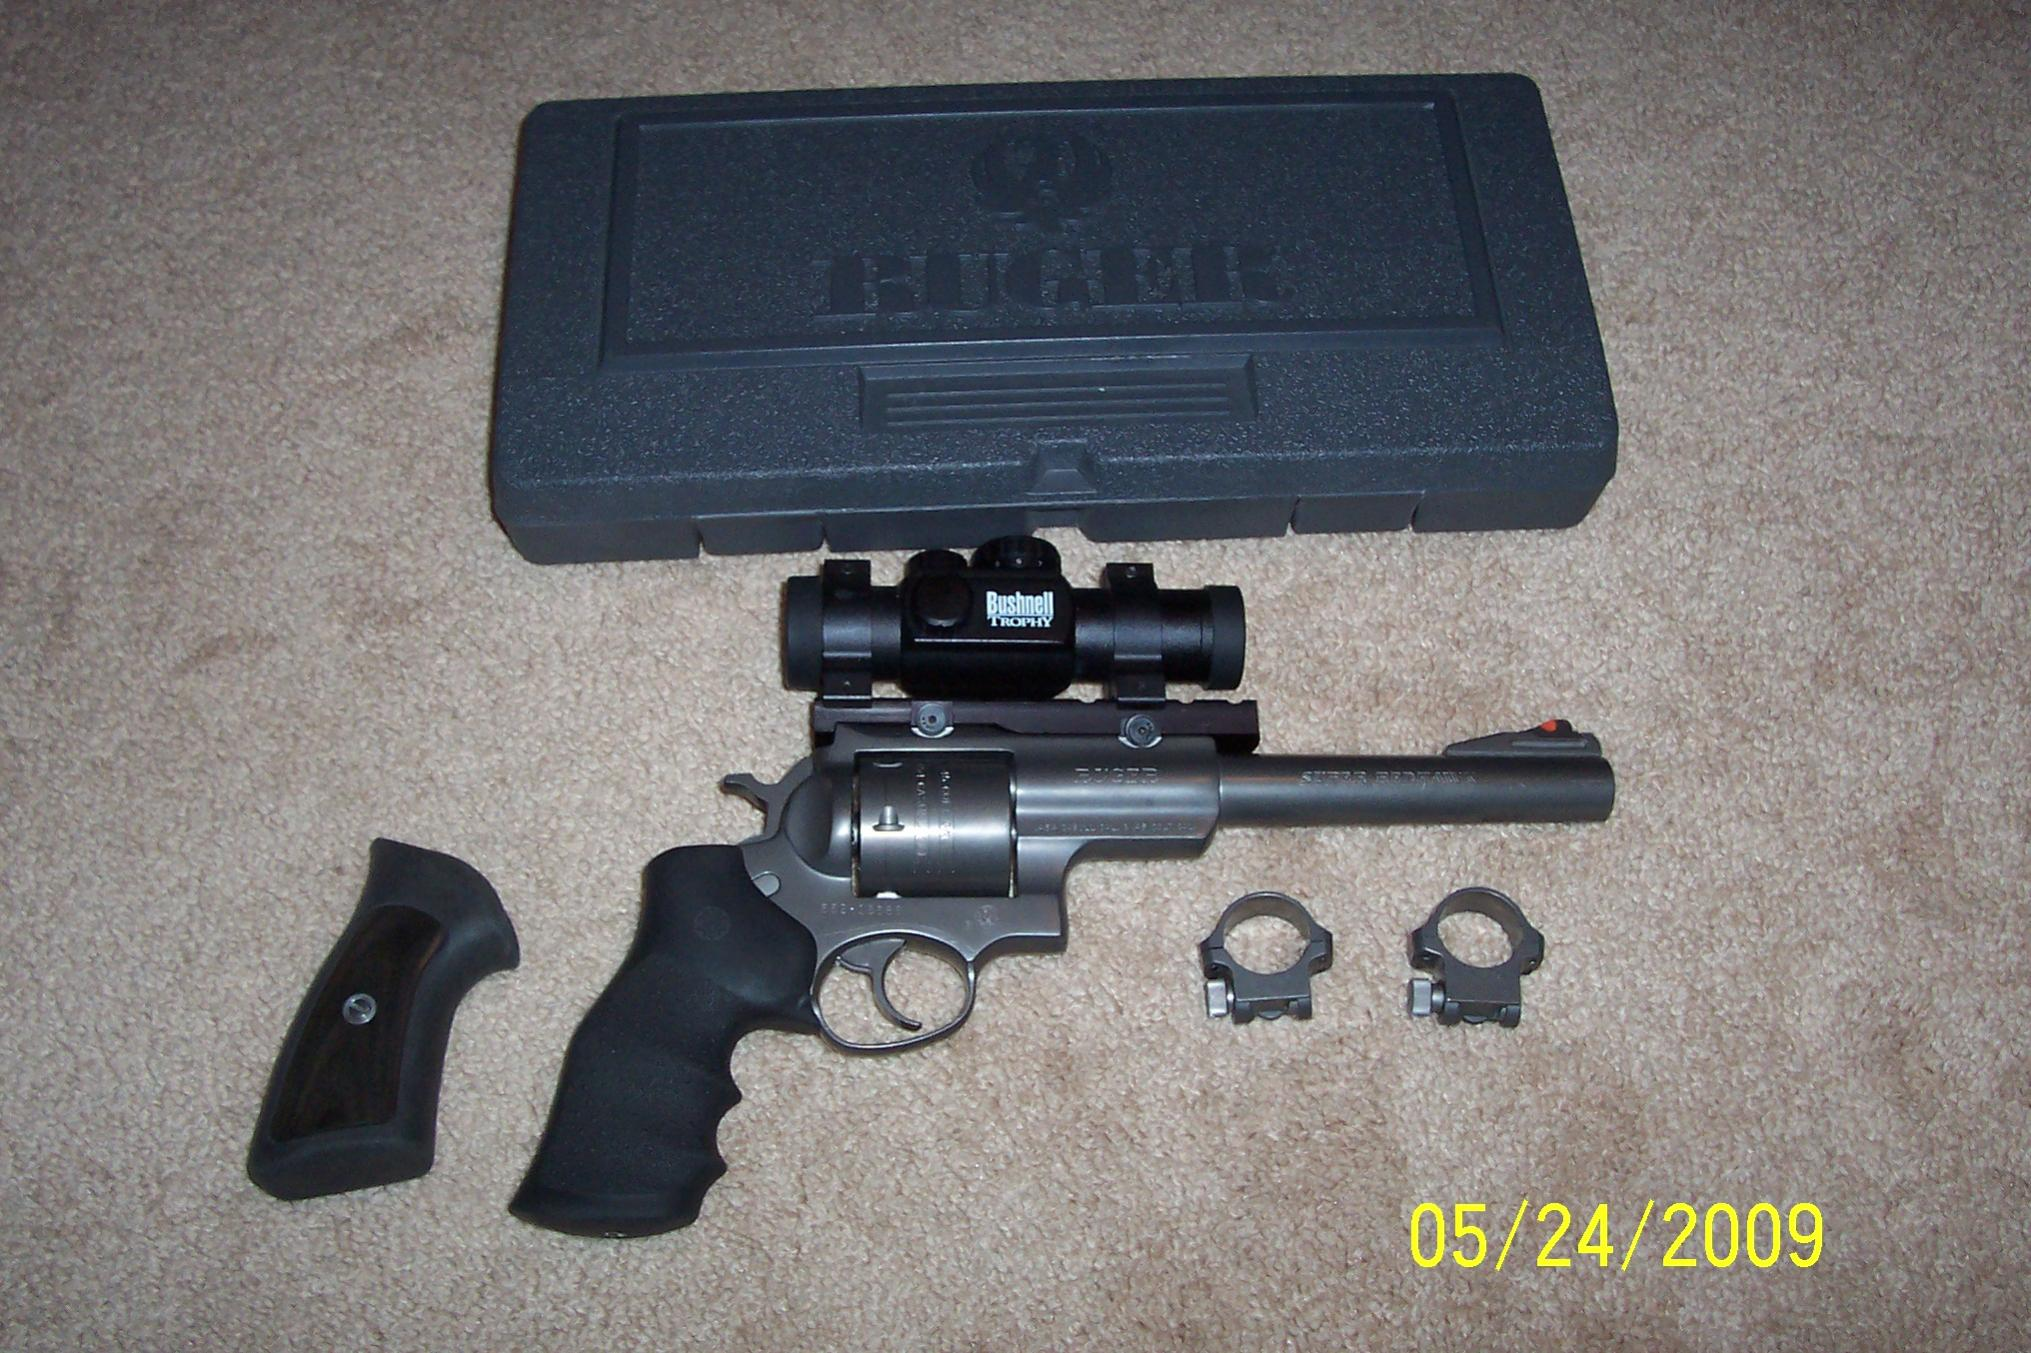 WTS Practically New Ruger Super Red Hawk .454 Casull w/ Bushnell Red Dot Scope : [NC]-100_3988.jpg